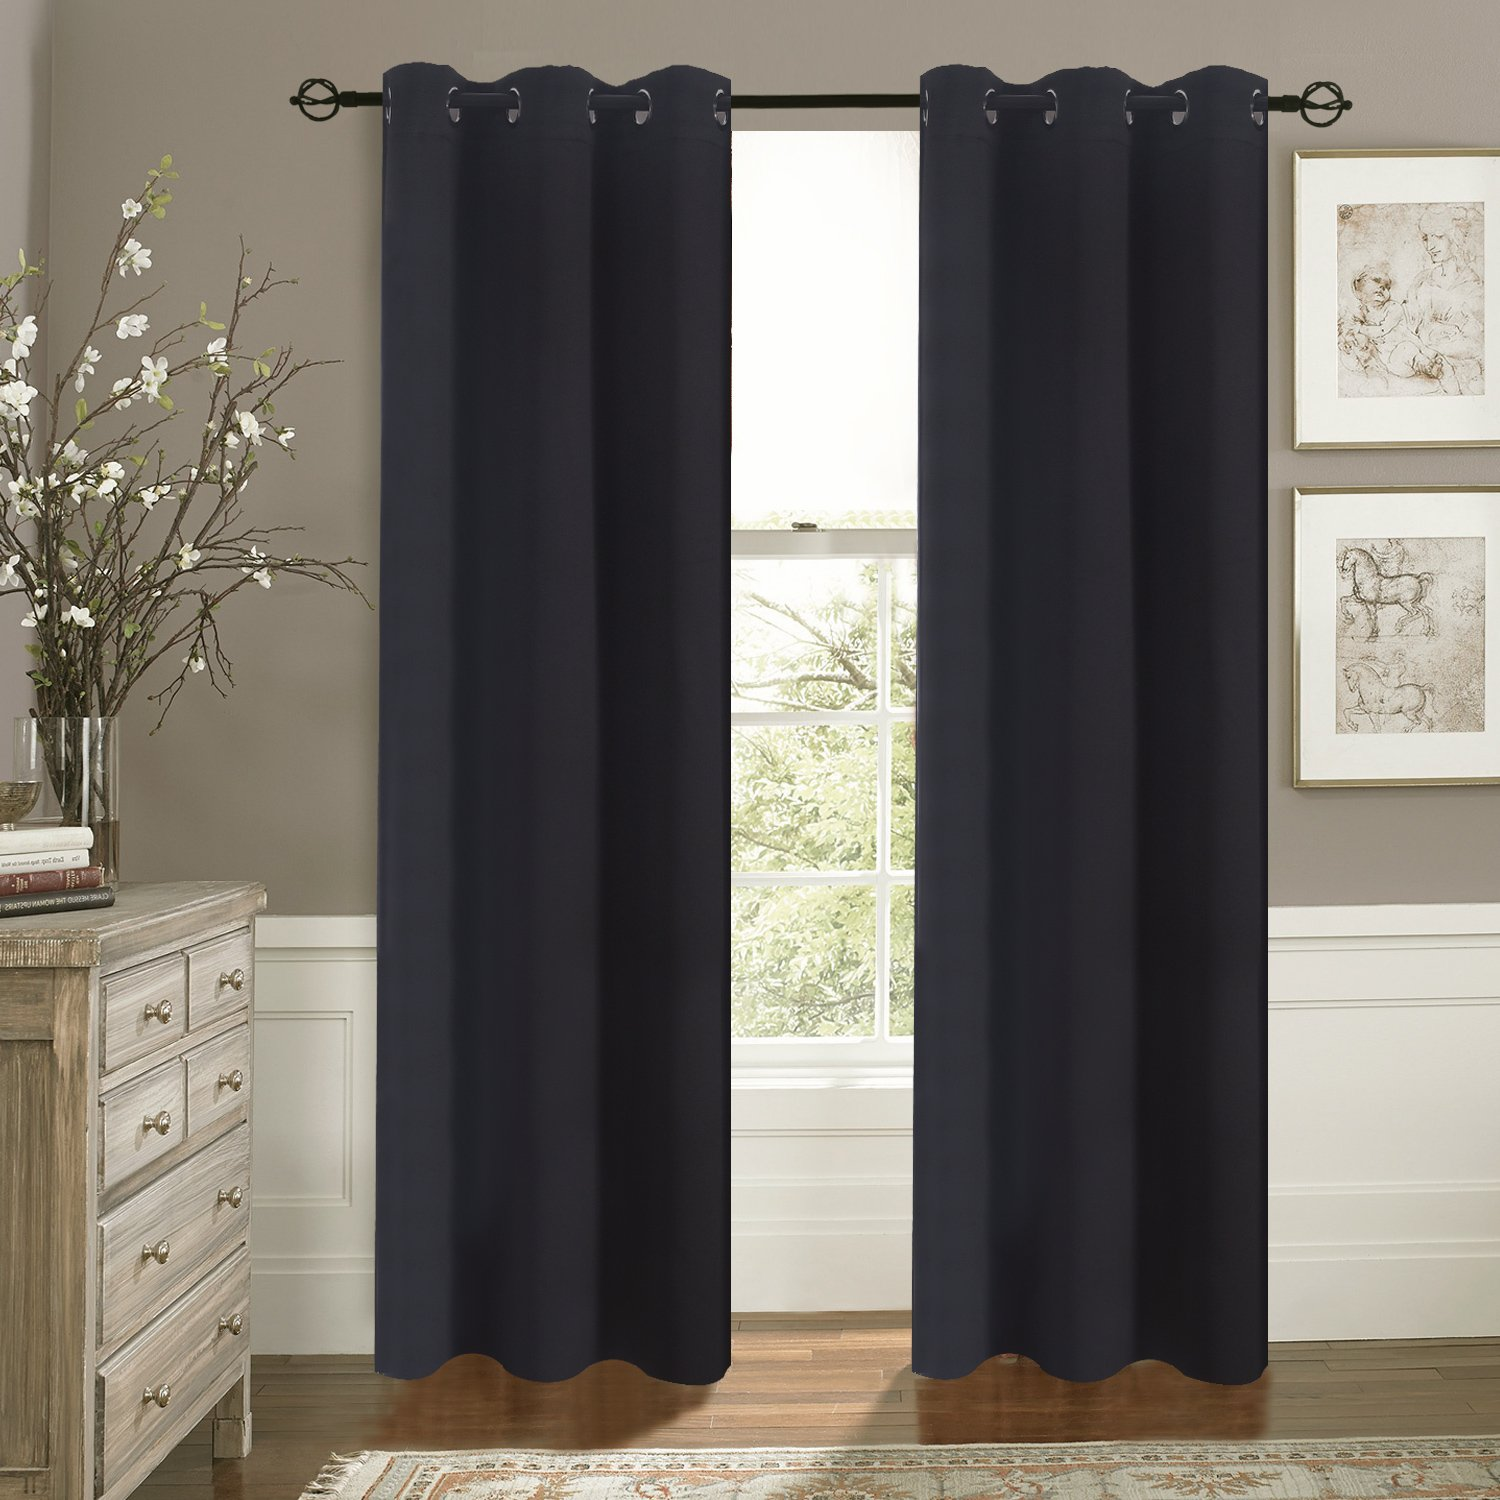 Bedroom Curtains Blackout Drapery Panels - Aquazolax Three Pass Microfiber Thermal Insulated Solid Ring Top Blackout Window Coverings/ Drapes